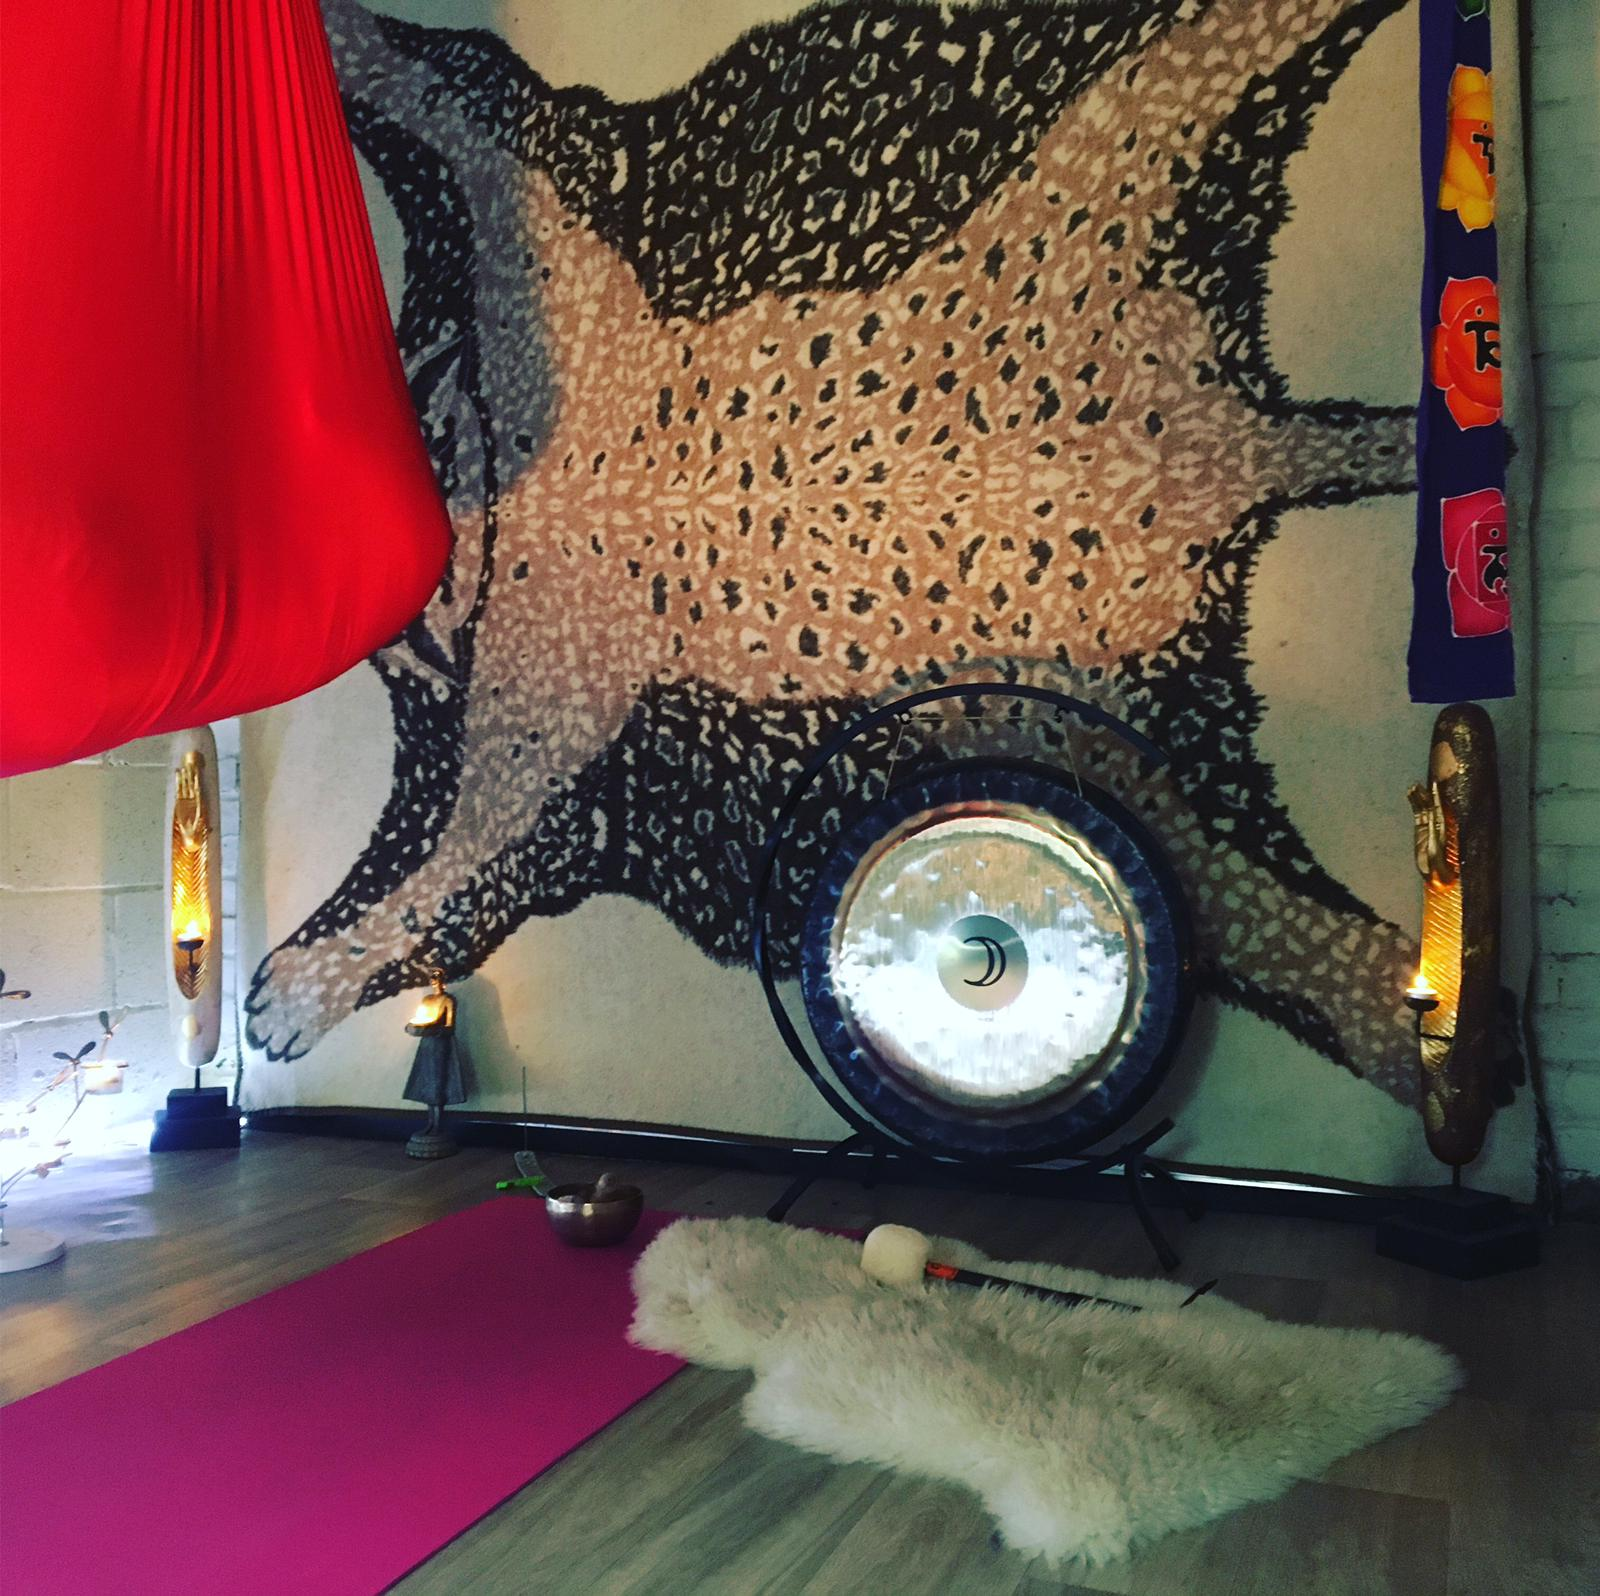 YOGA BY CANDLELIGHT - Cocoon Meditation